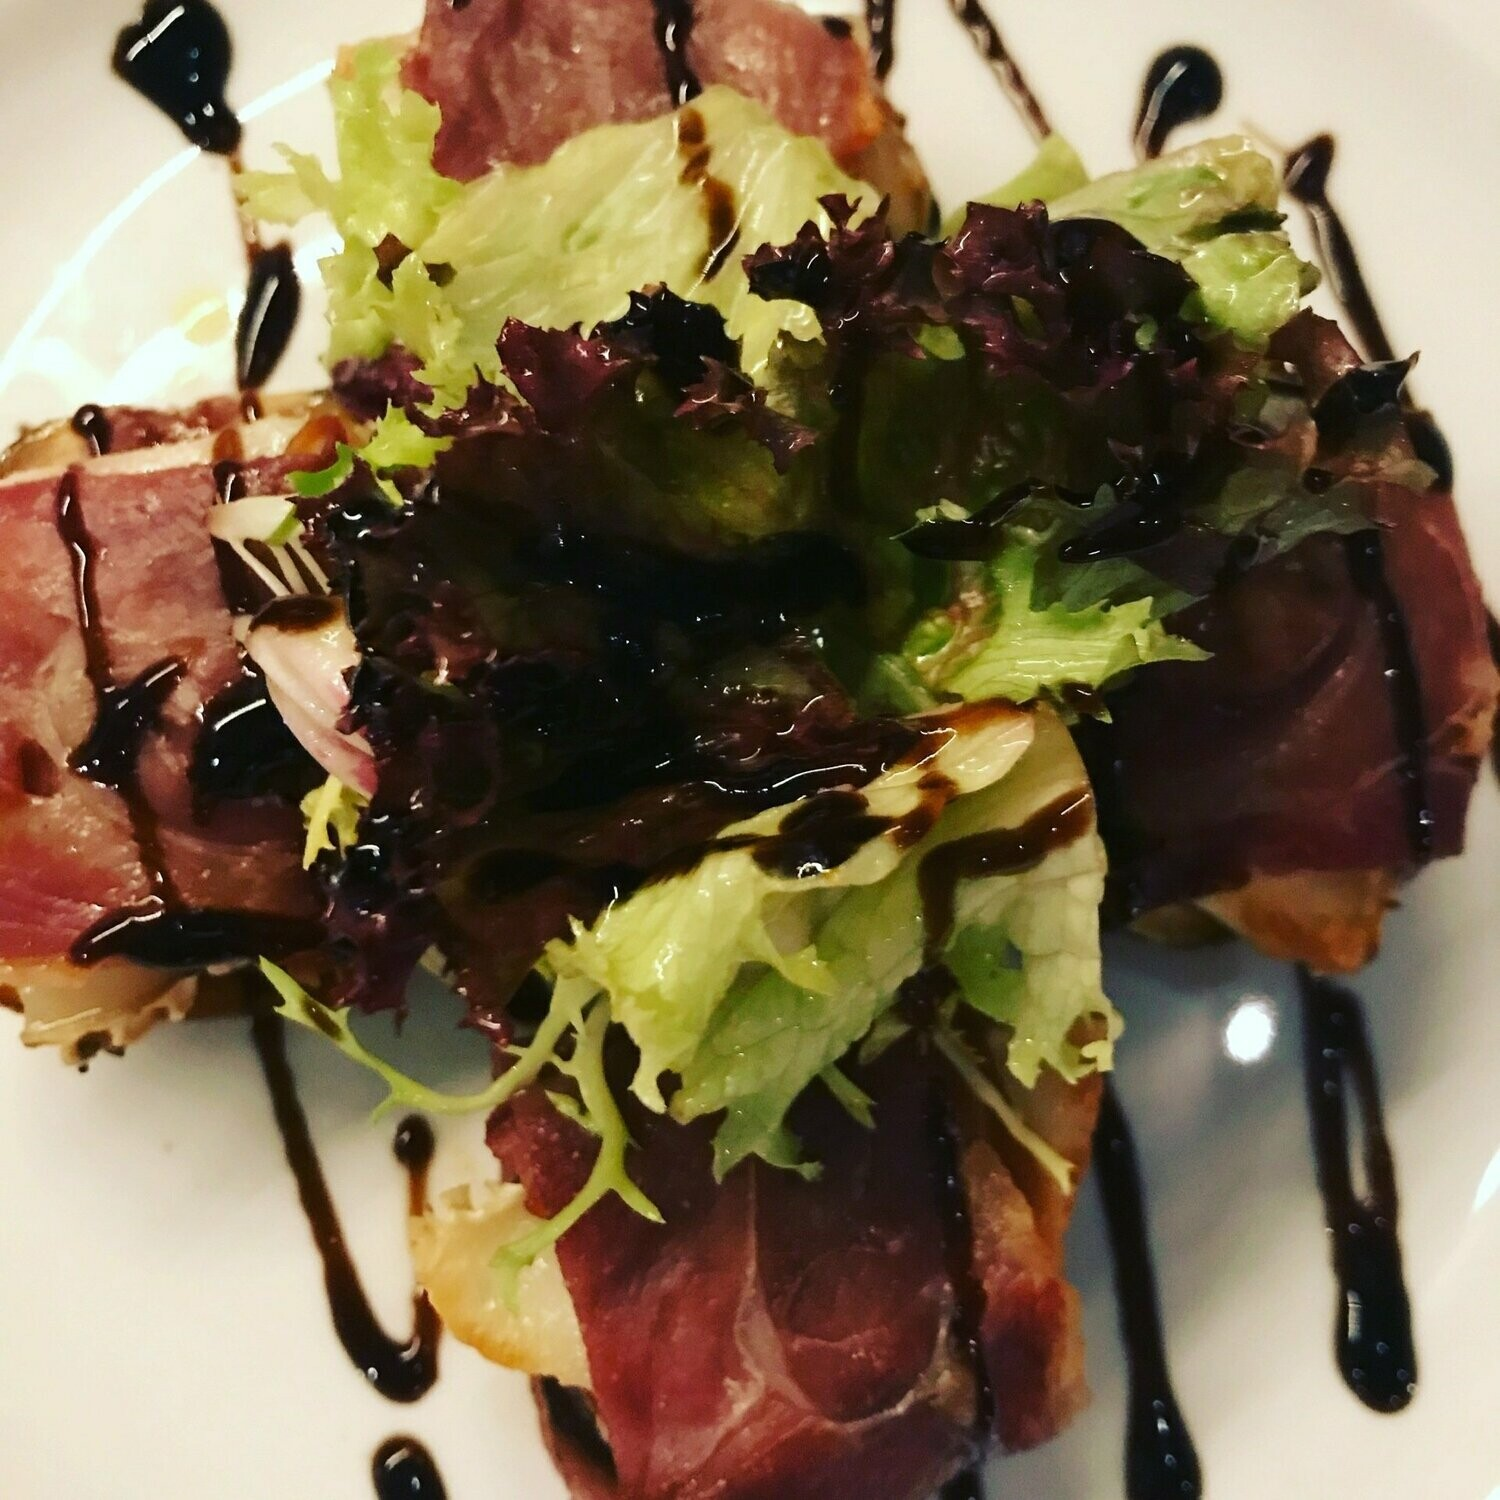 Baked Figs and Goats Cheese Wrapped in Parma Ham, Mixed ...